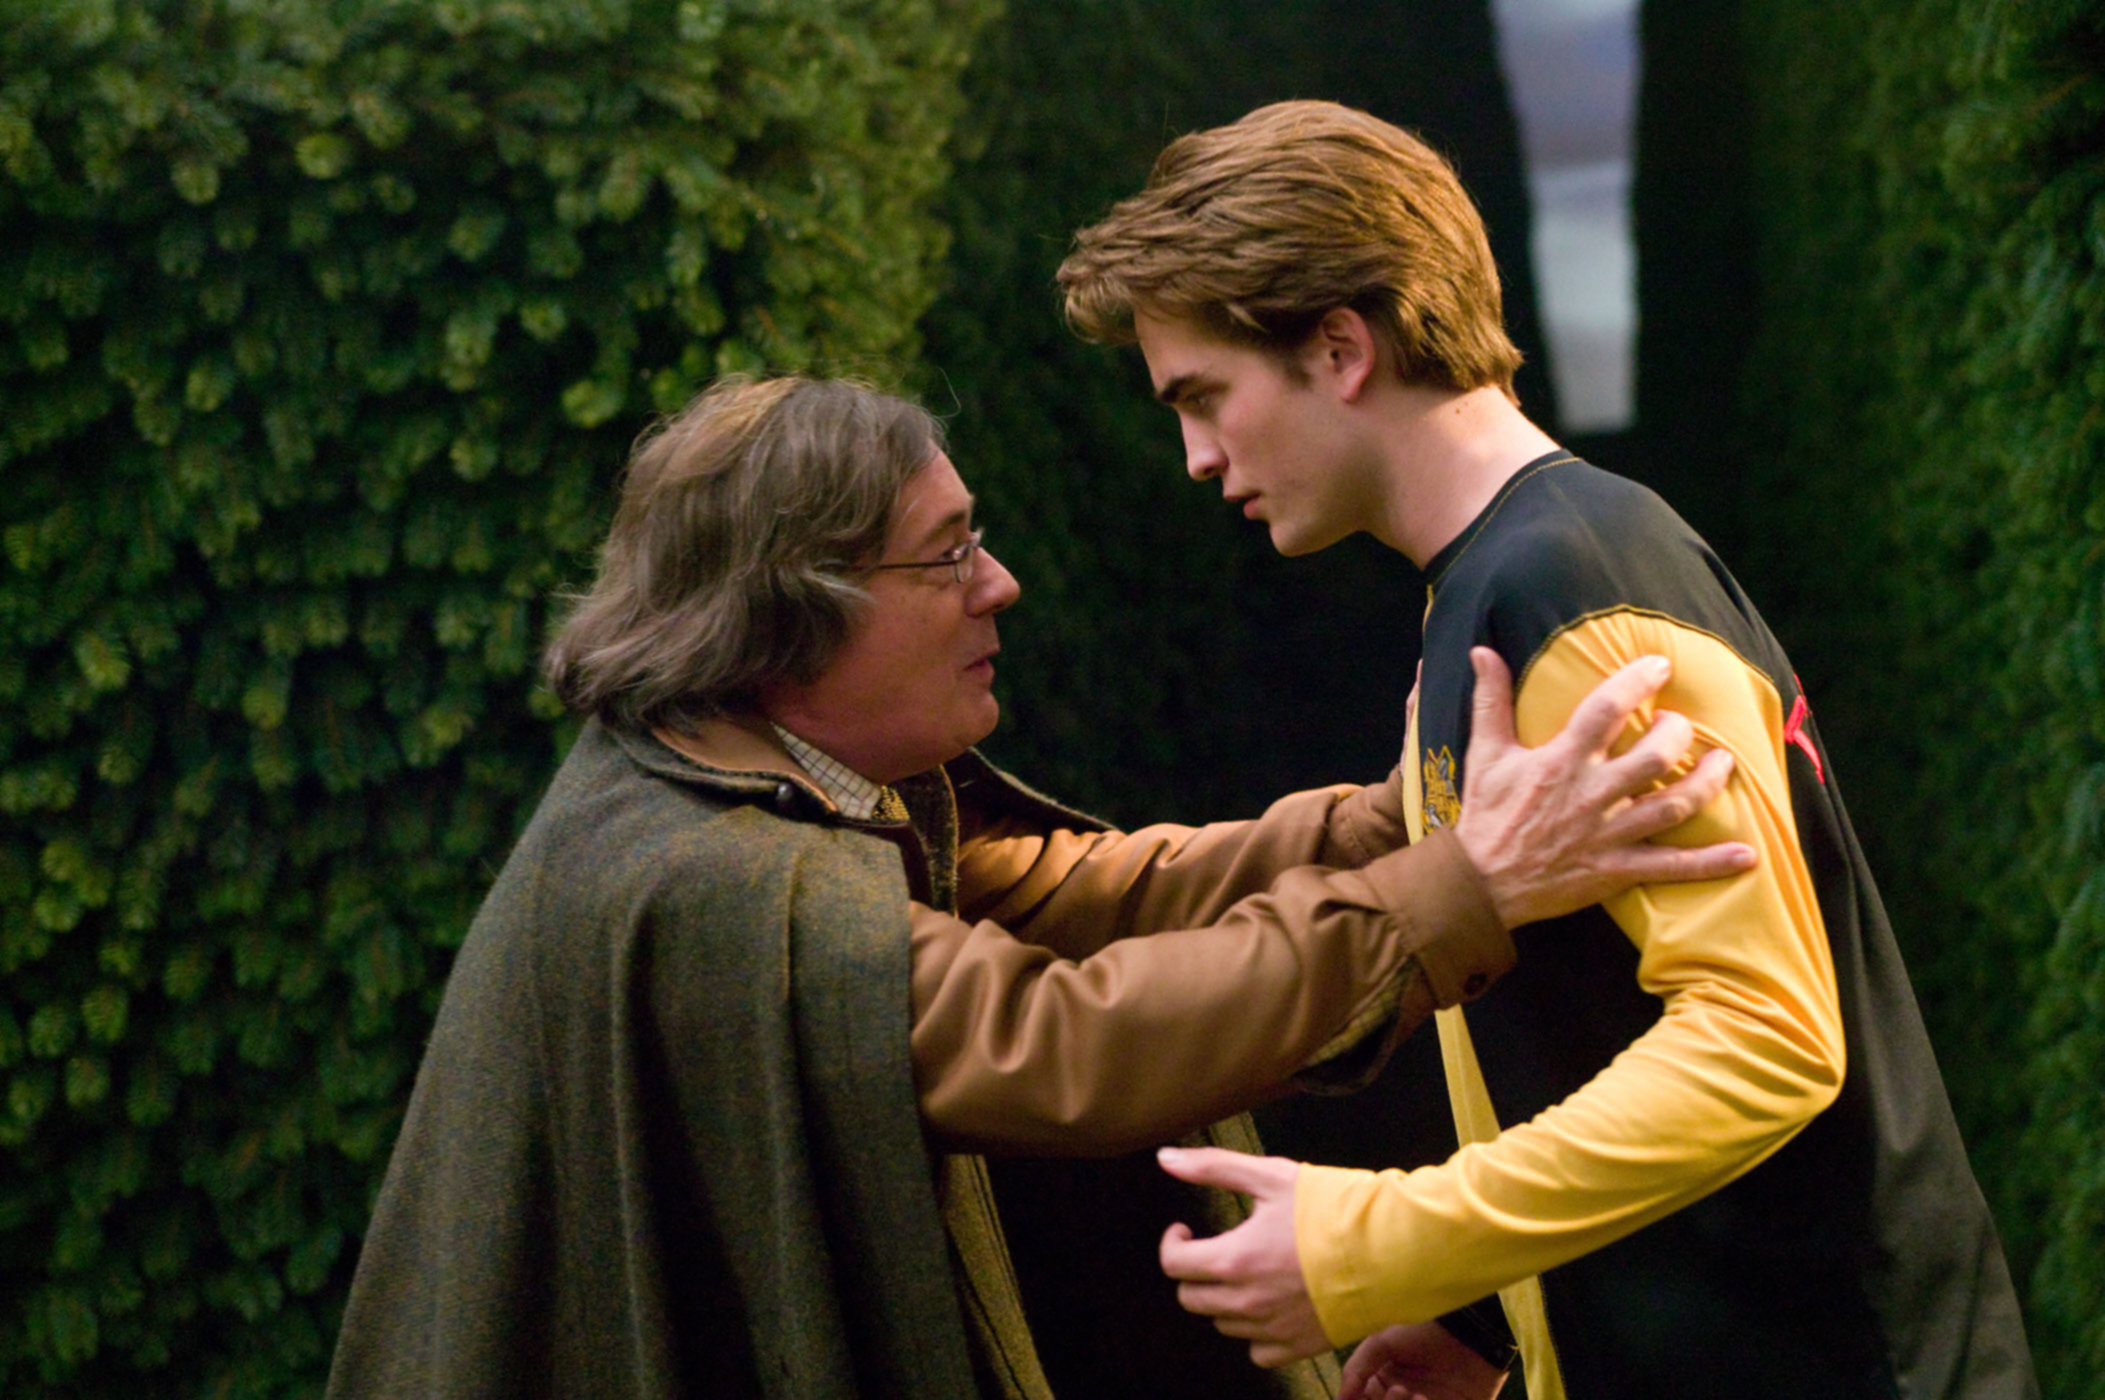 Harry Potter And The Goblet Of Fire Cedric Diggory Death Scene Amos wishing his son good luck